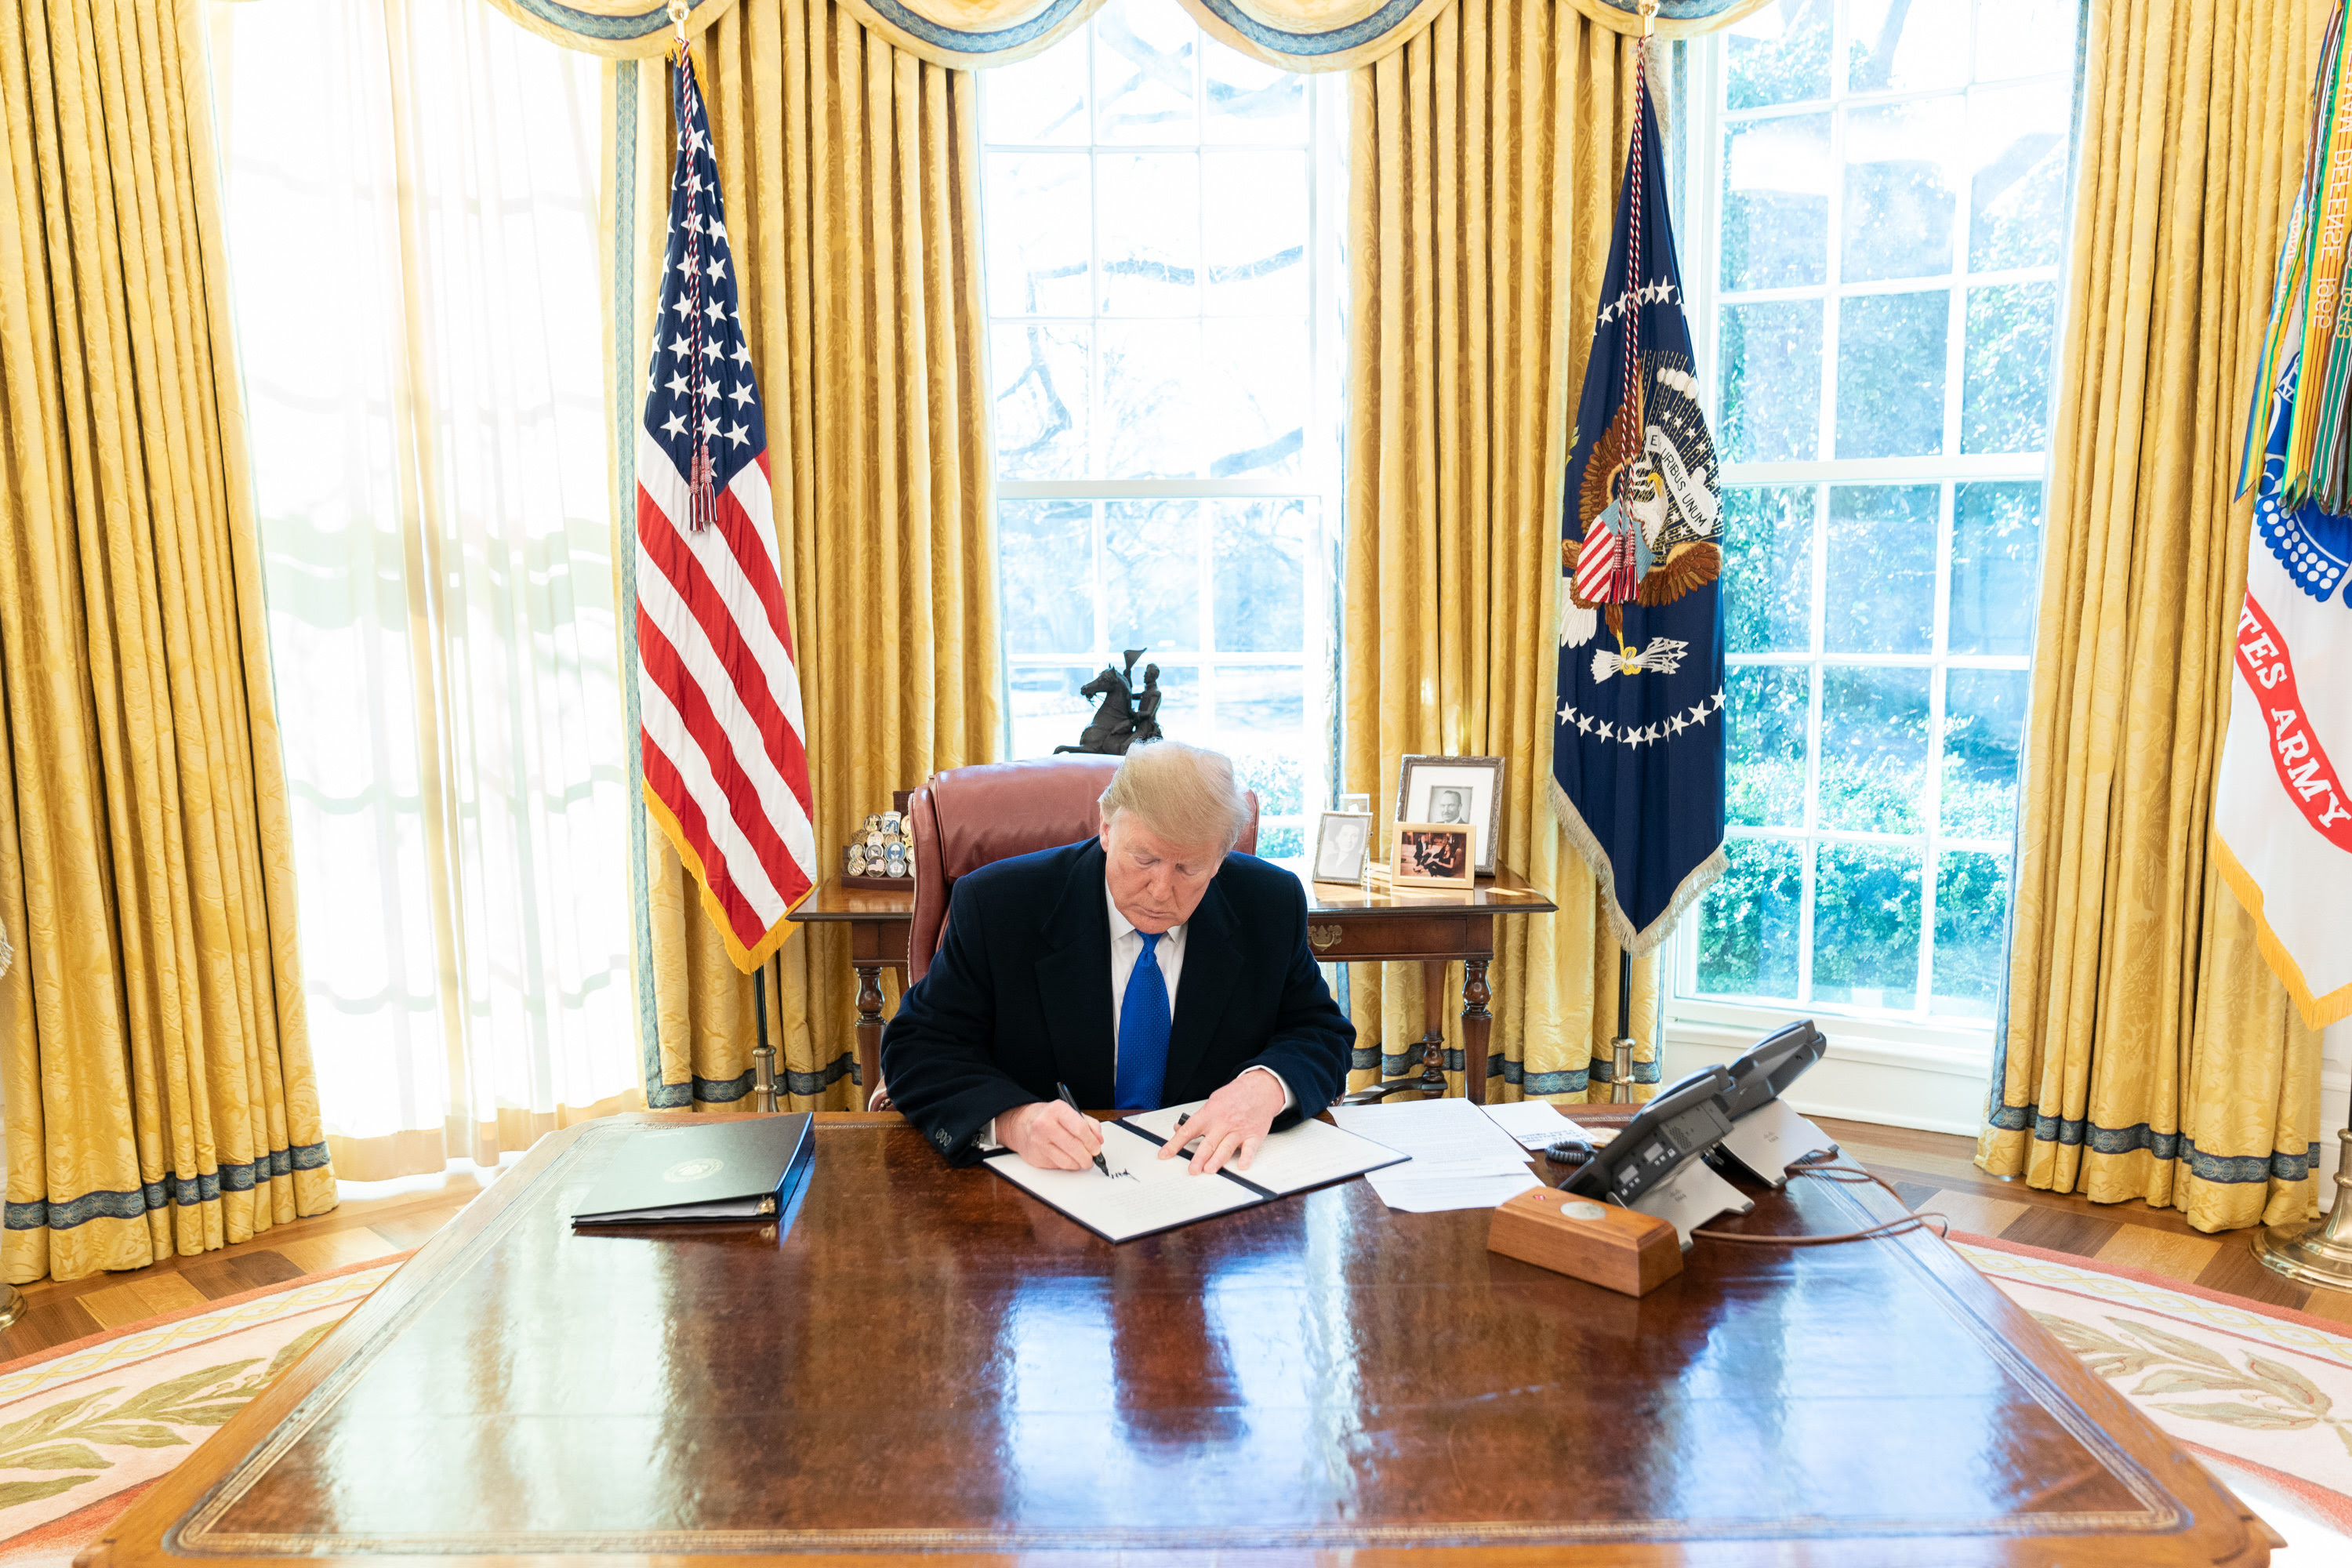 """President Donald J. Trump signs a presidential proclamation on """"Declaring a National Emergency Concerning the Southern Border of the United States."""" (Official White House Photo/Shealah Craighead)"""